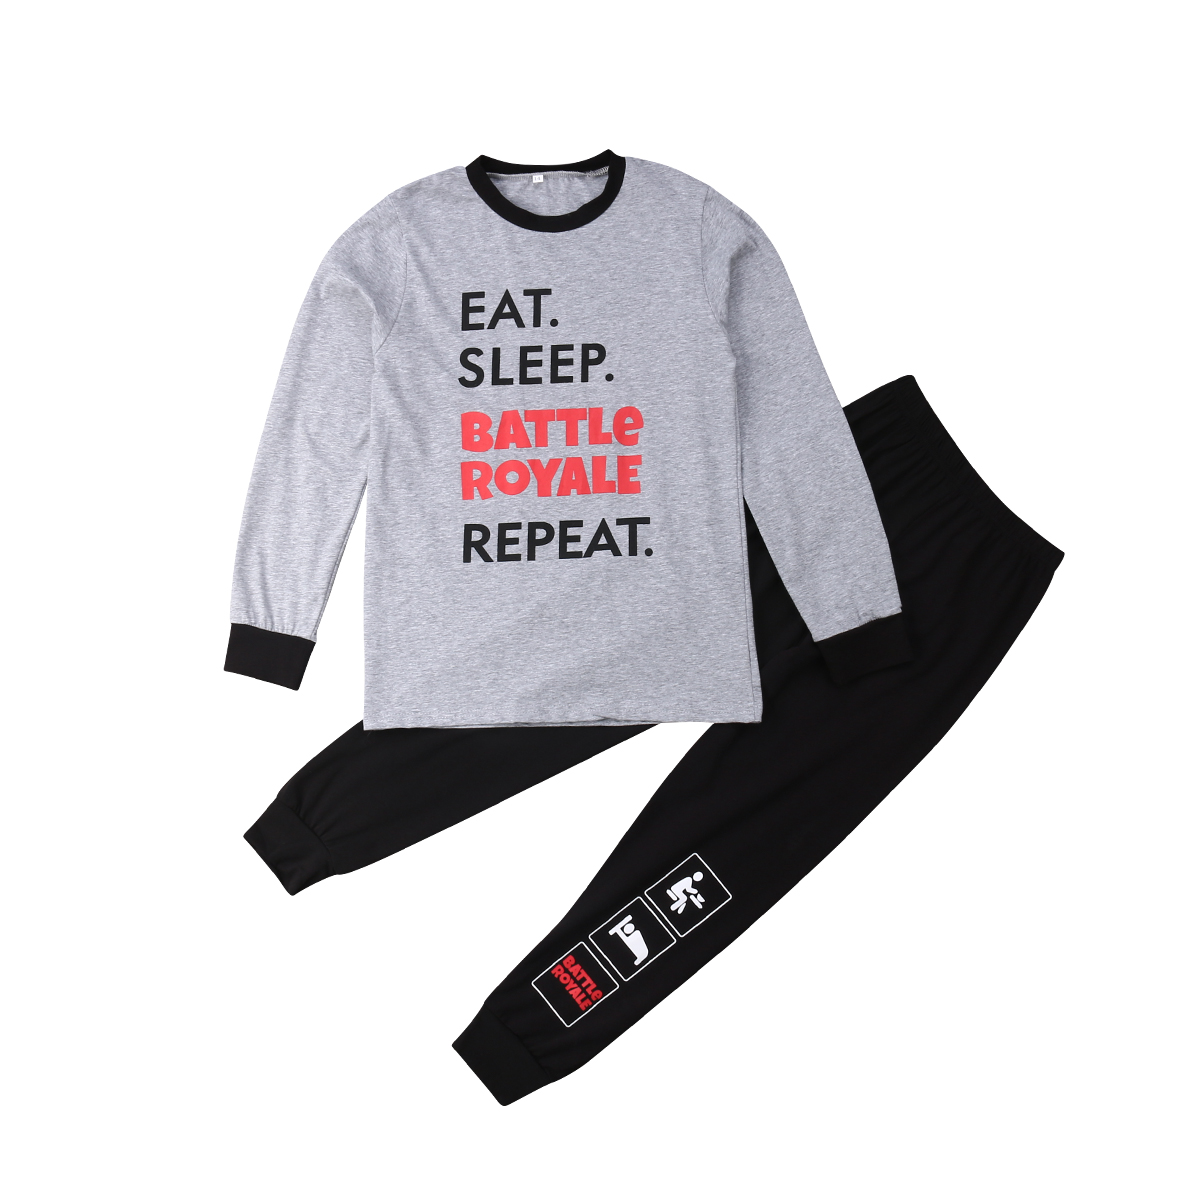 T-Shirt Outfits Long-Pants Toddler Baby-Boys-Girls Kids Tops 2pcs-Set New Arrivels